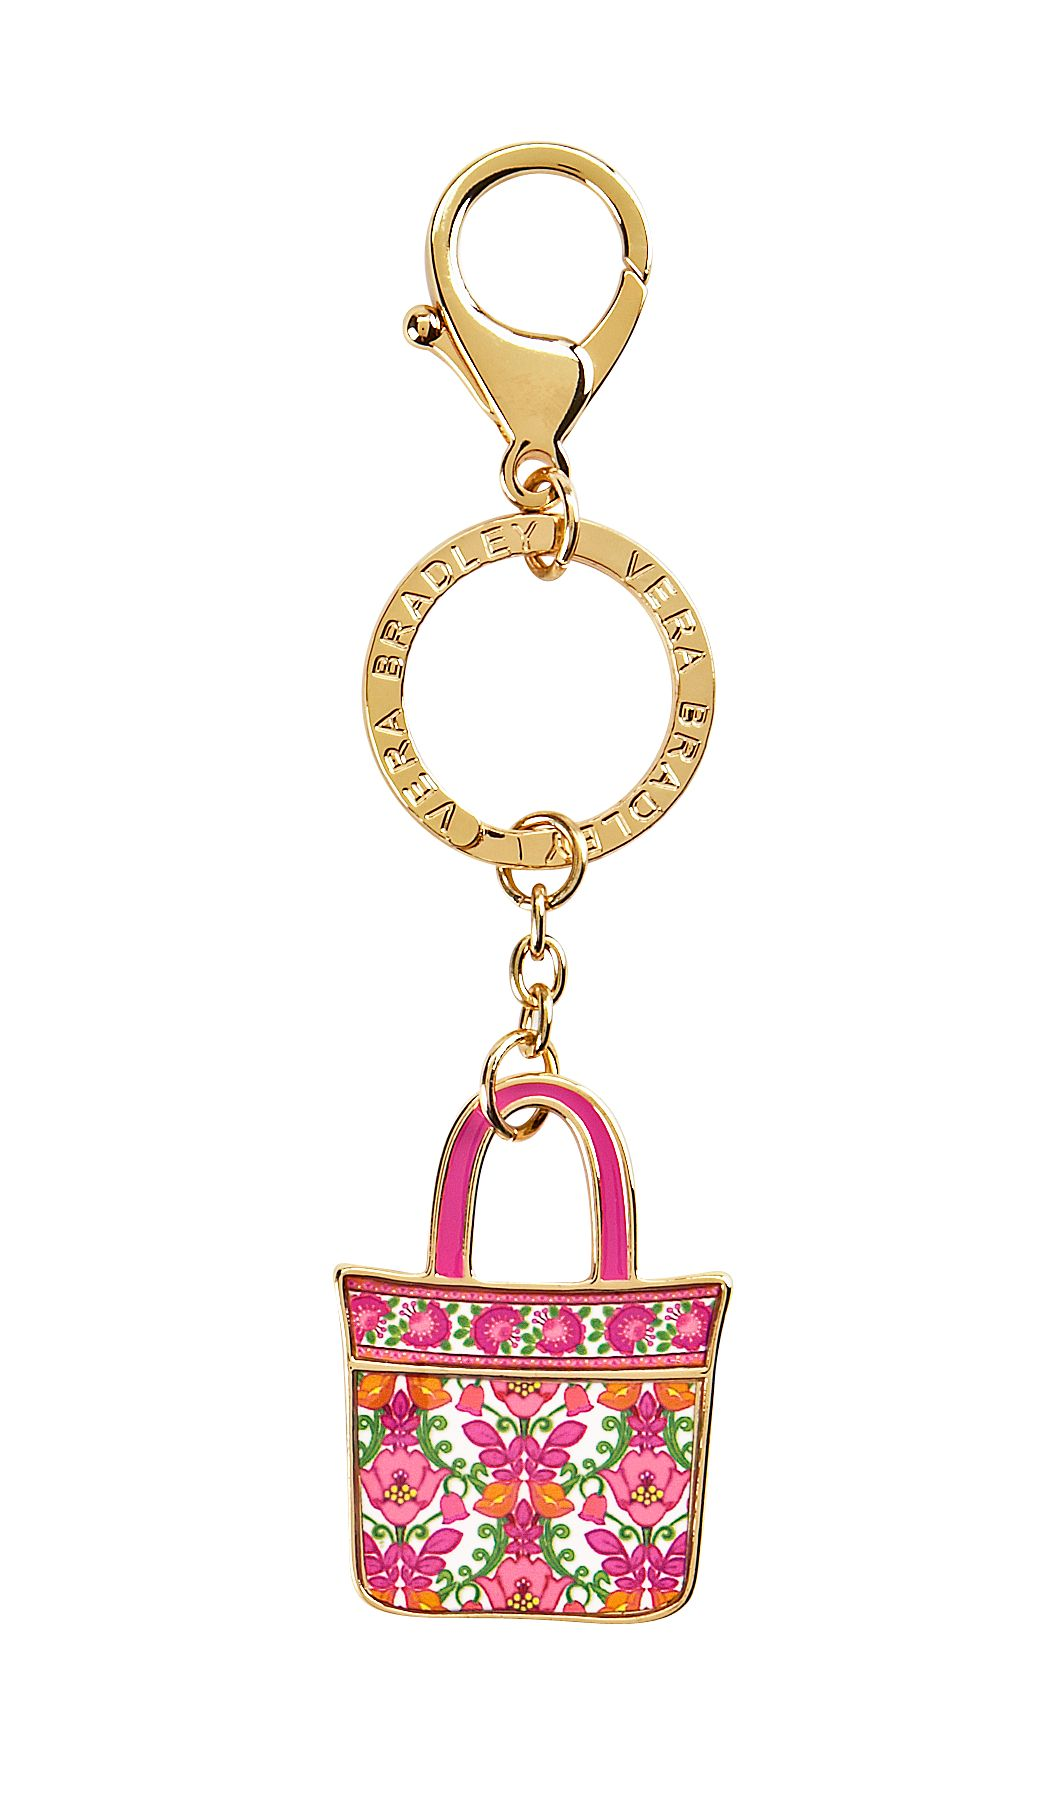 Vera Bradley Tote Around Keychain in Lilli Bell $ 15.40